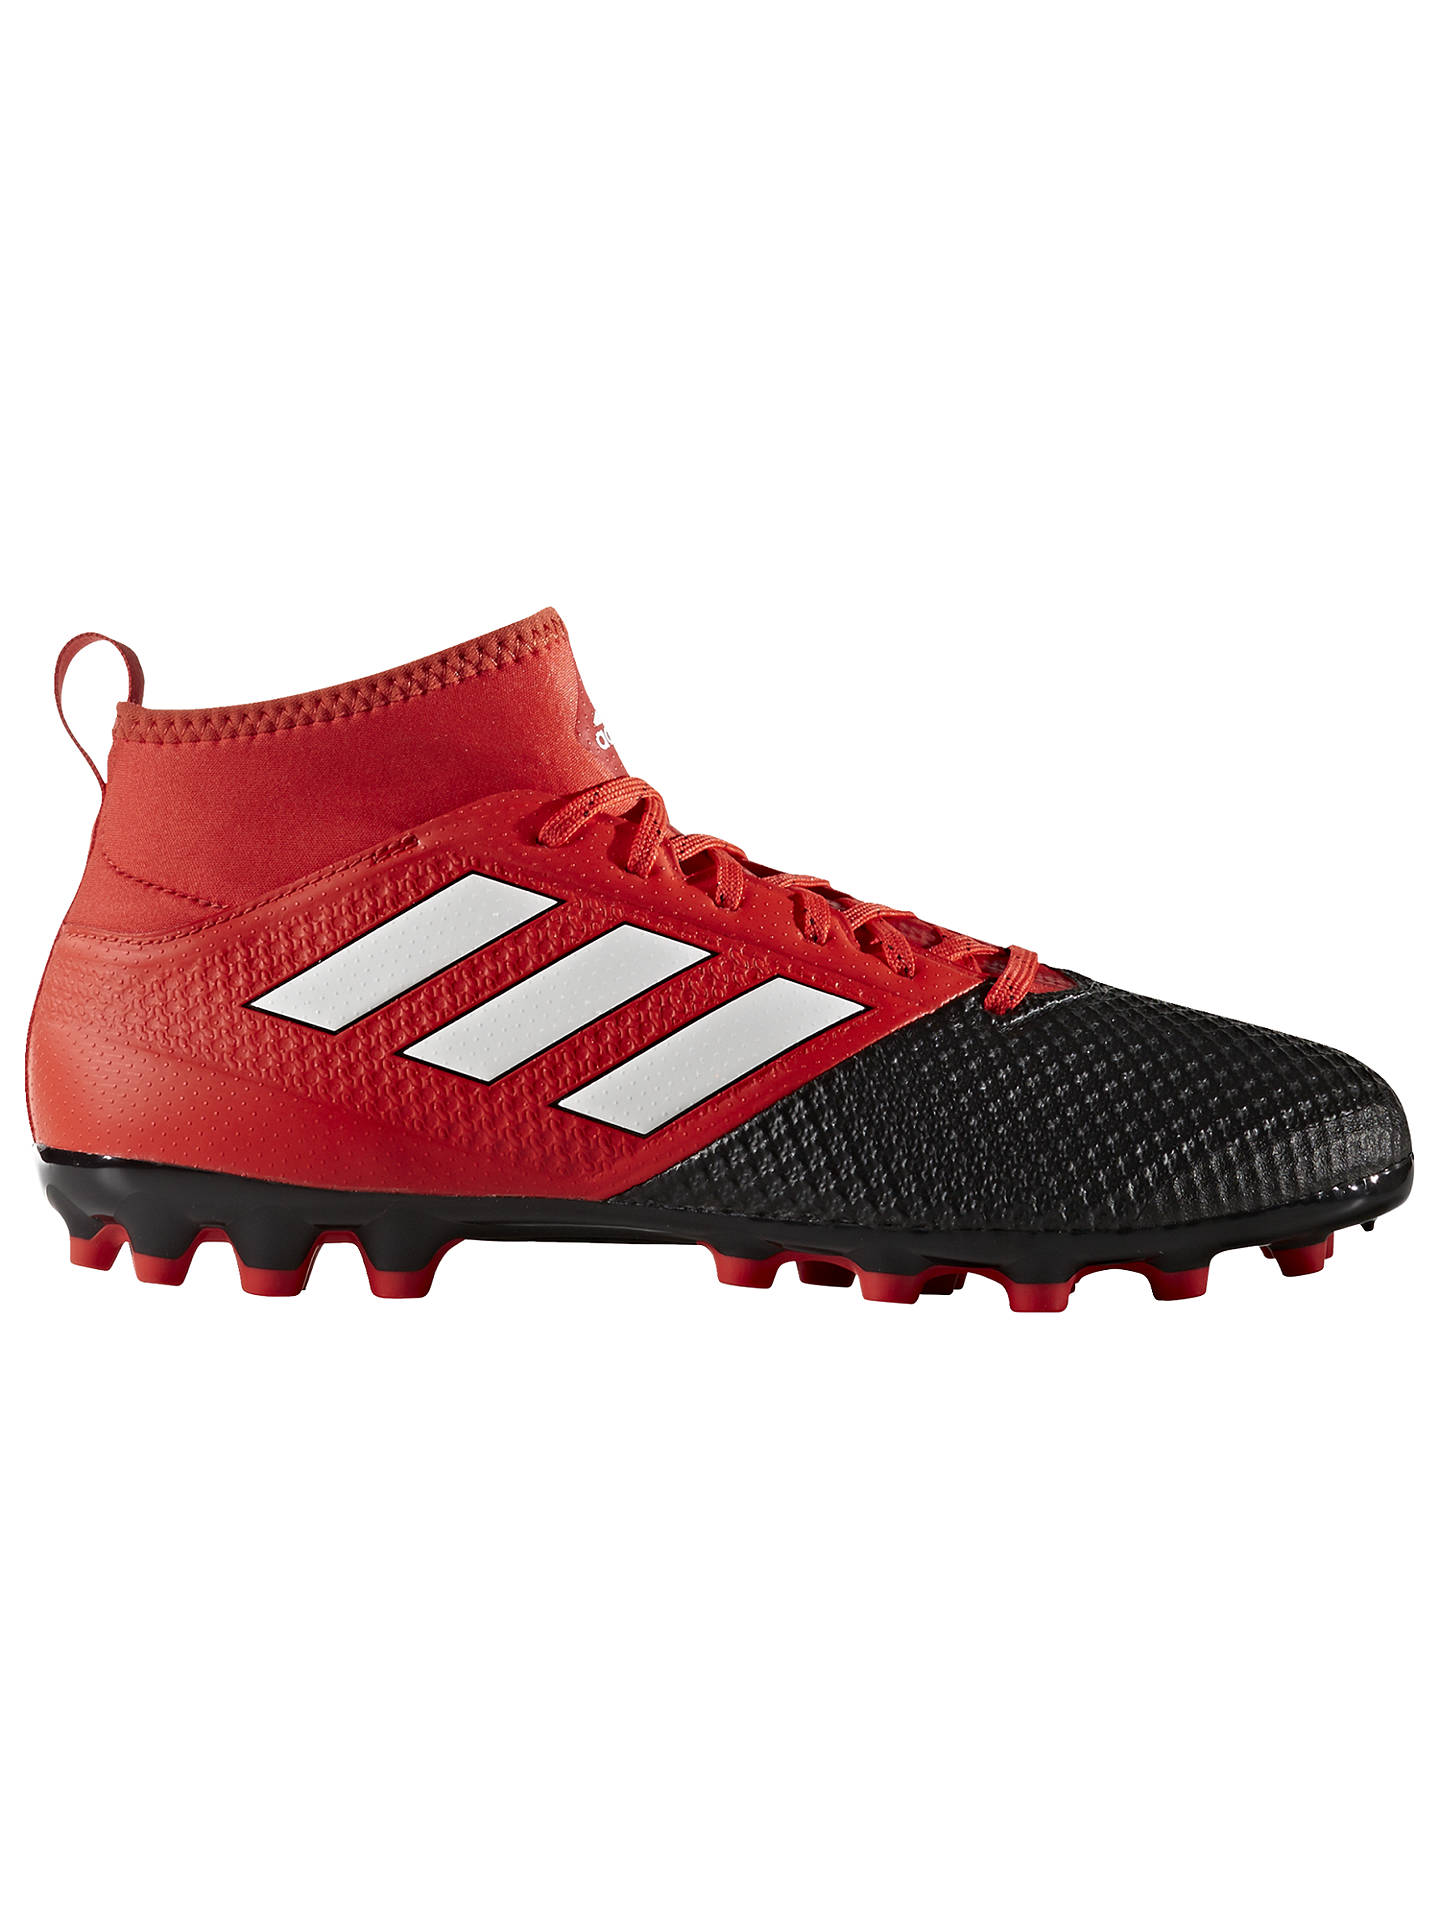 f93288d095c7b ... coupon for buyadidas ace 17.3 primemesh ag mens football boots red  black 7 online at df601